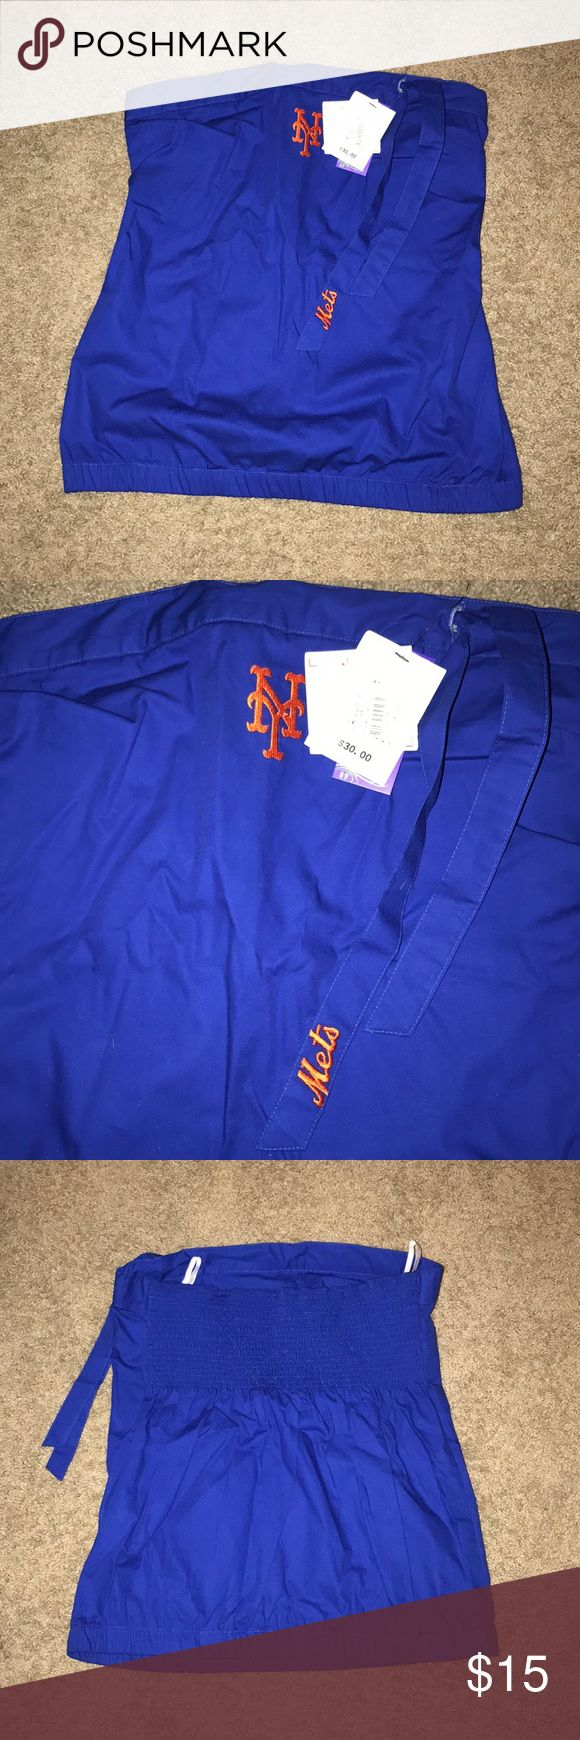 New York Mets tube top Brand new New York Mets tube top! Great for hot days at the ballpark. Cute tie at the top with Mets on the tie. Touch by Alyssa Milano Tops